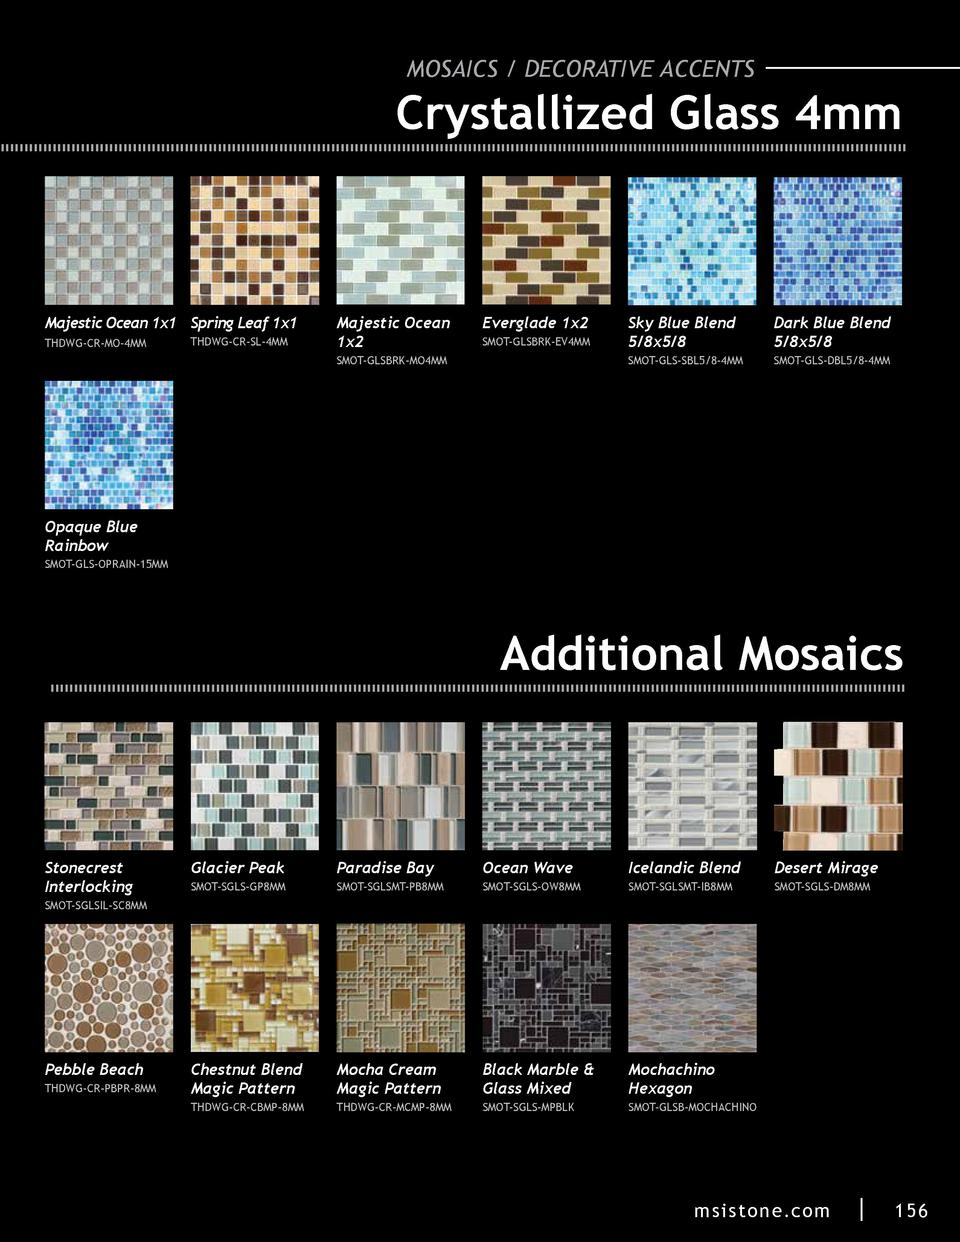 MOSAICS   DECORATIVE ACCENTS  Crystallized Glass 4mm  Majestic Ocean 1x1 Spring Leaf 1x1 THDWG-CR-MO-4MM  THDWG-CR-SL-4MM ...